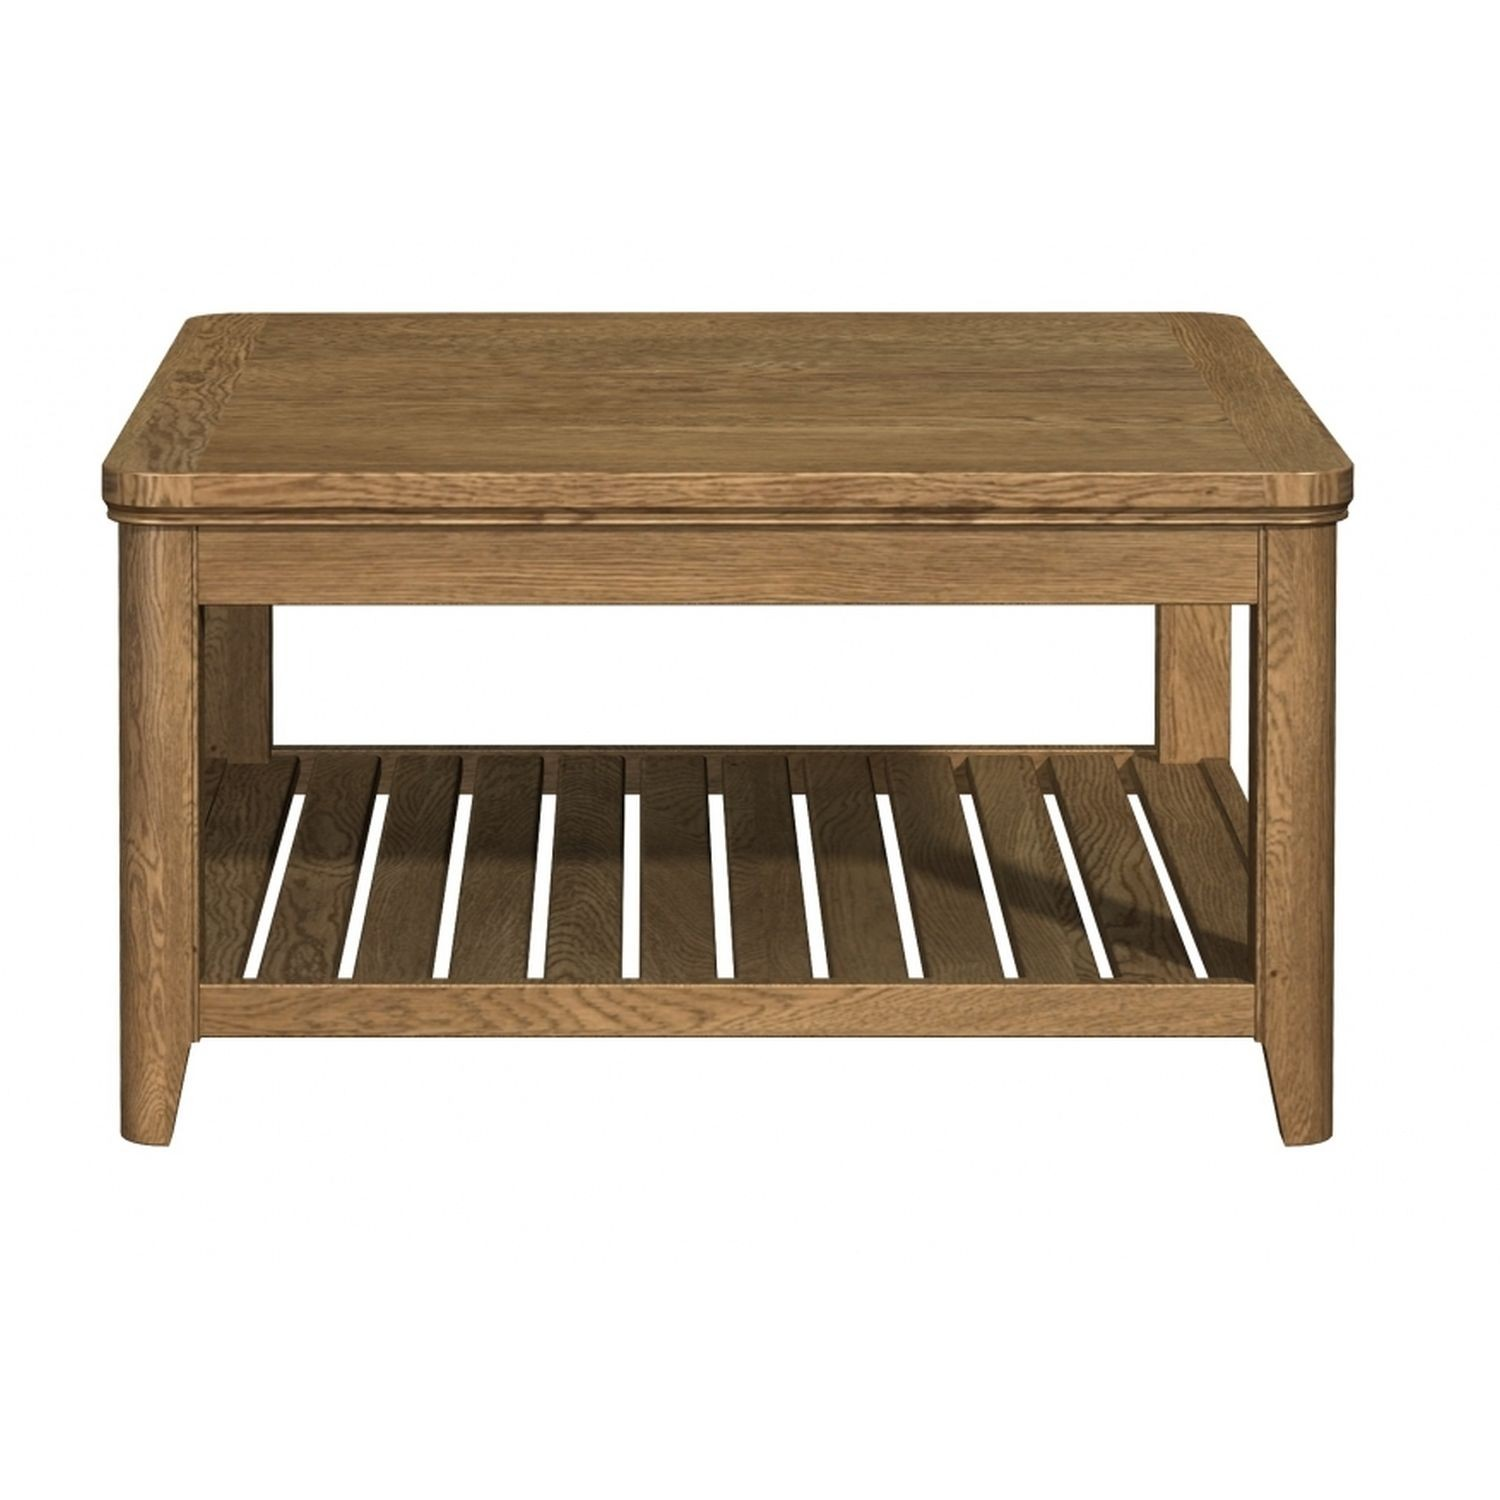 Copeland Square Coffee Table Oak